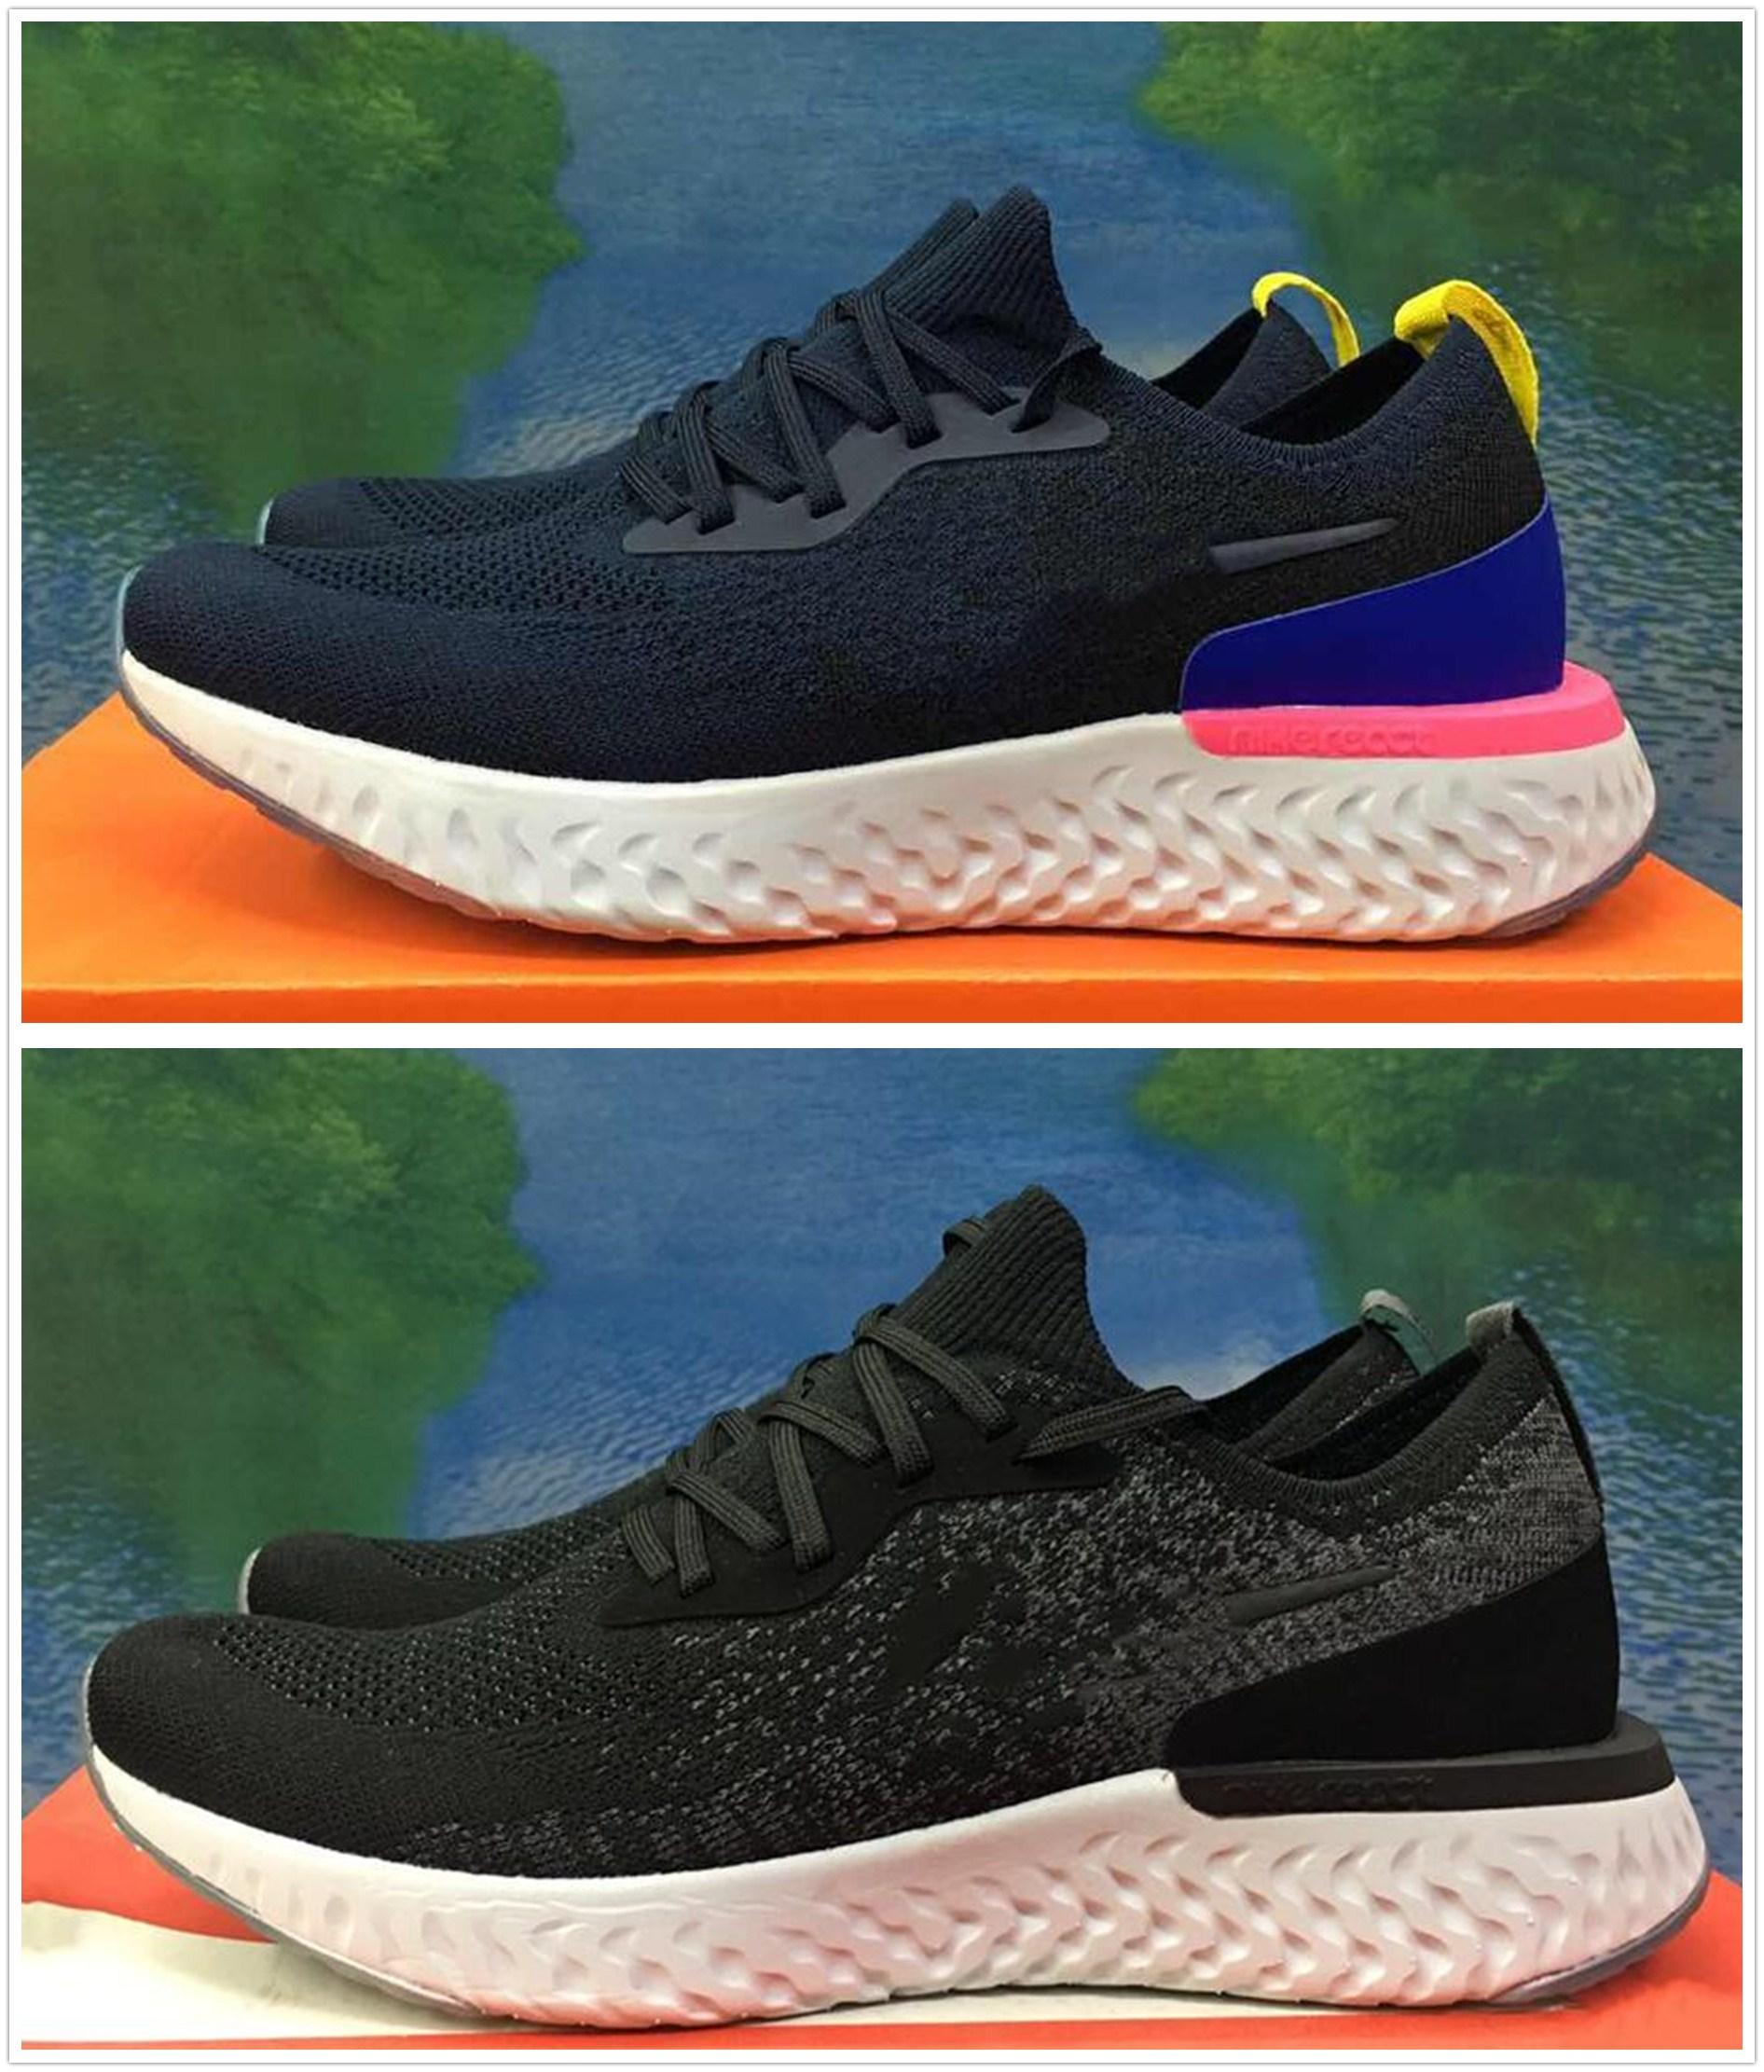 2c1dc1f4447 New Ultra Boost Uncaged Womens Mens Casual Shoes Outdoor Ultra Boost 5.0  Femme Homme Trainers Walking Sneakers Suede Shoes Shoe Sale From Salomons